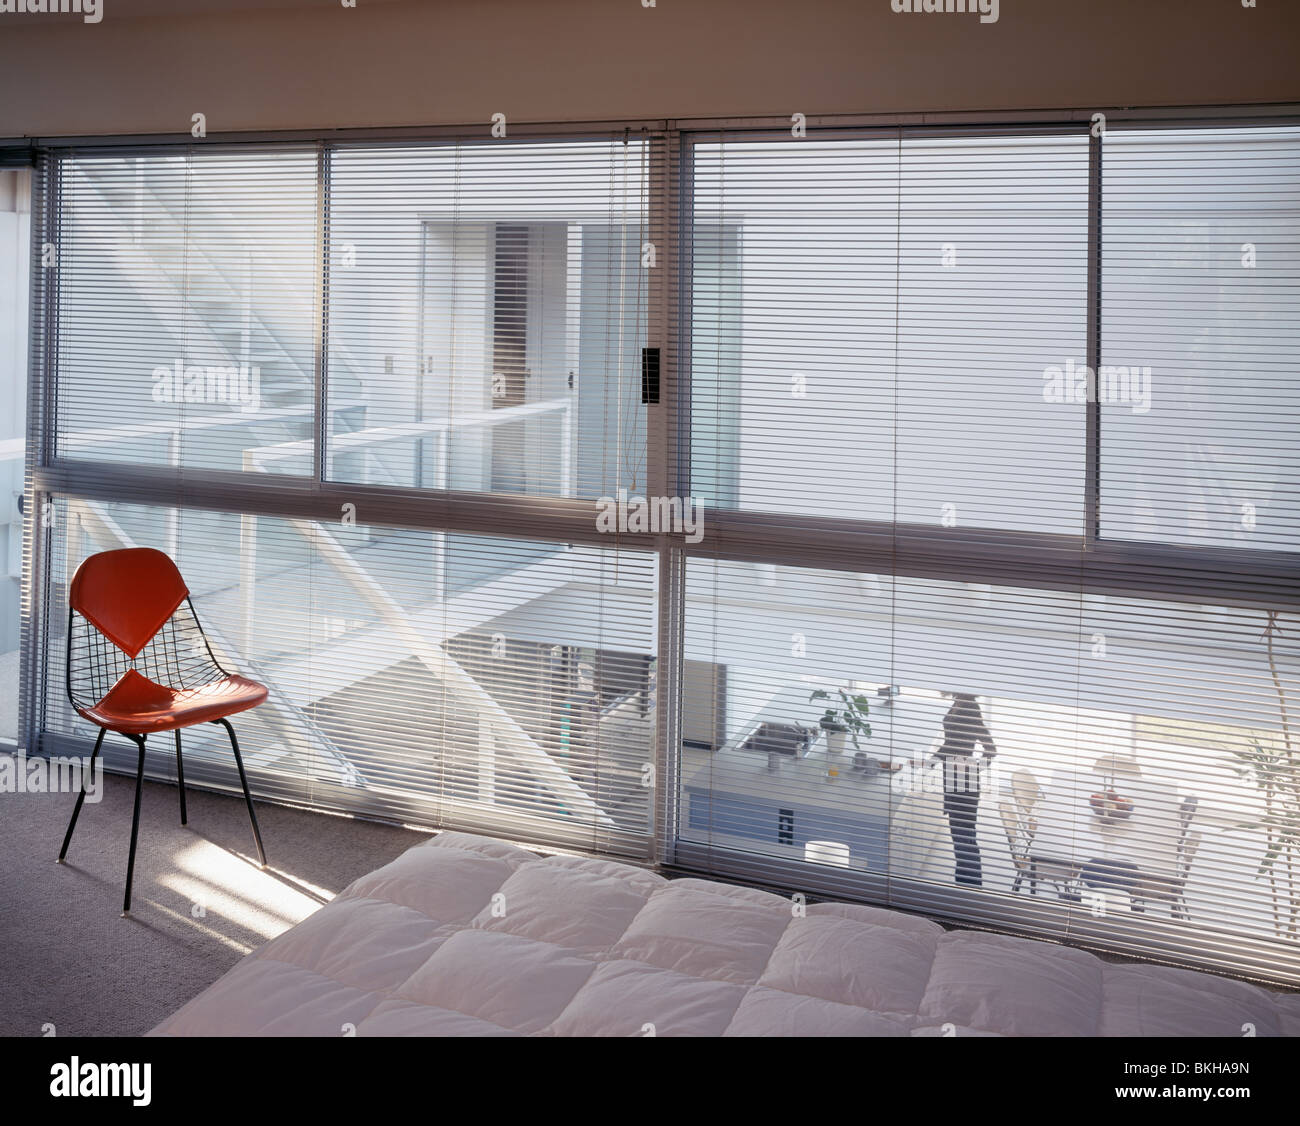 Charles Eames Chair In Front Of Glass Wall With Blinds In Modern White  Bedroom Overlooking Open